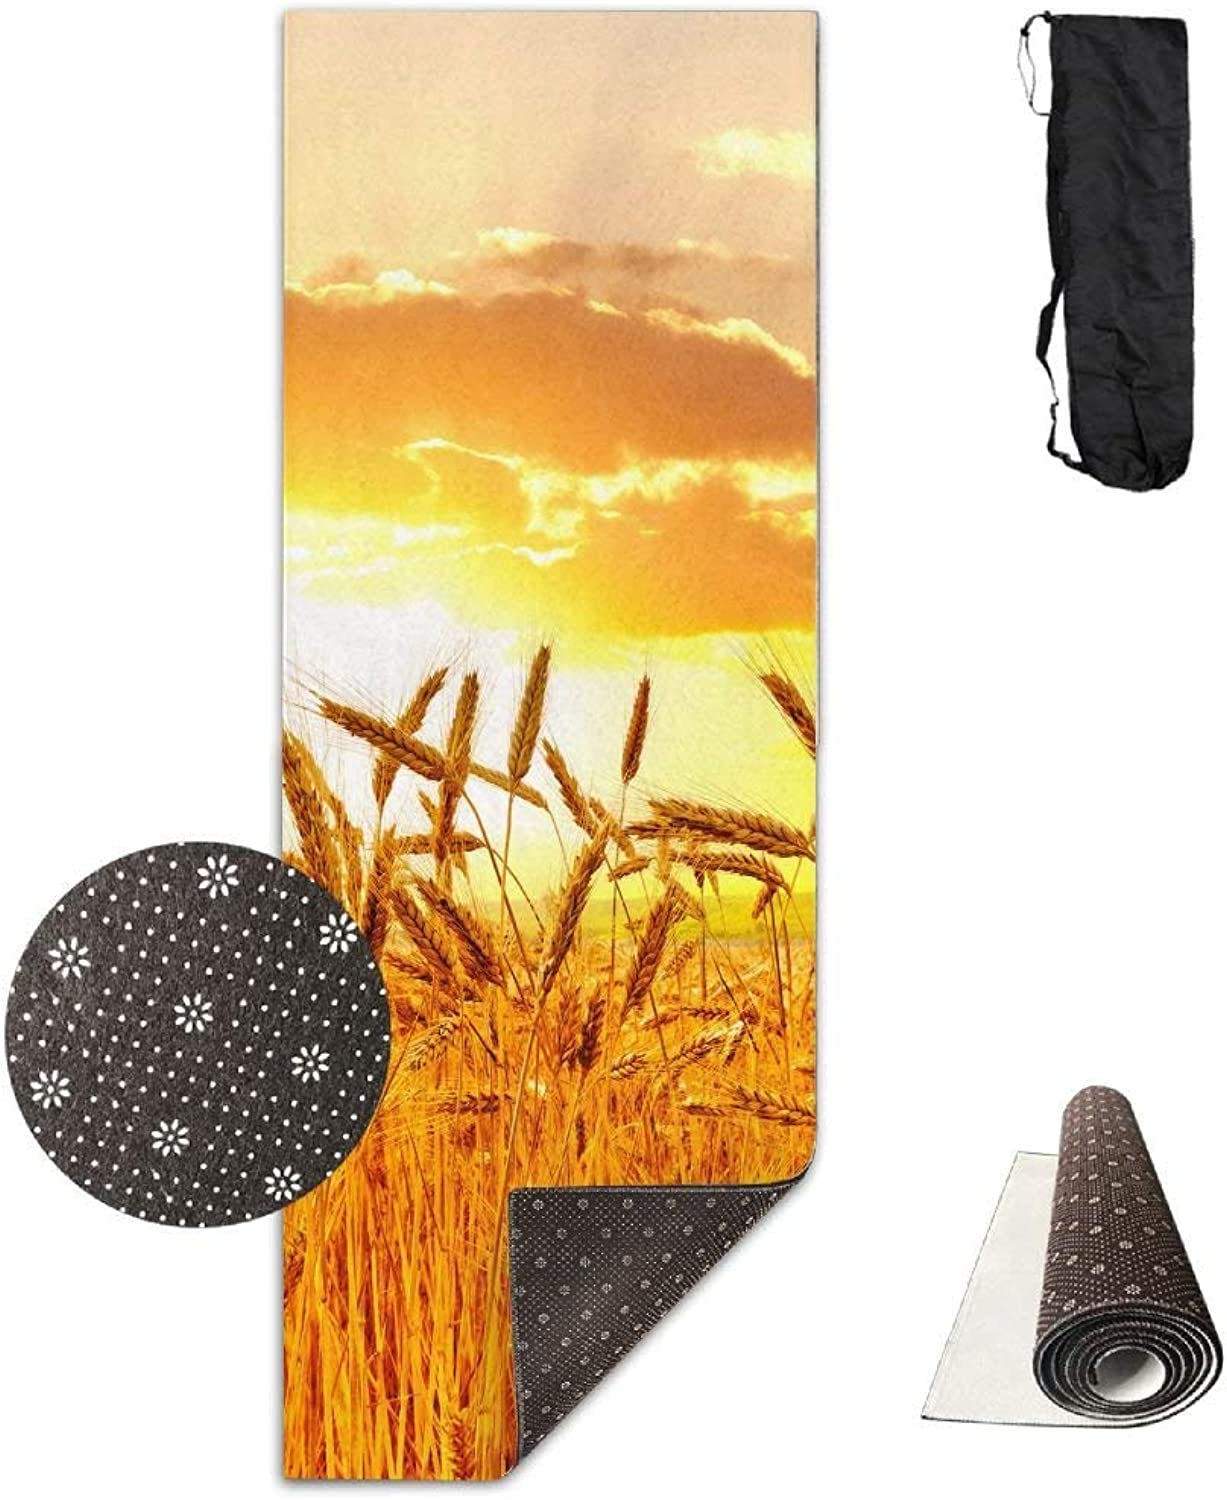 Fields Sunrises and Sunsets Sky Deluxe Yoga Mat Aerobic Exercise Pilates